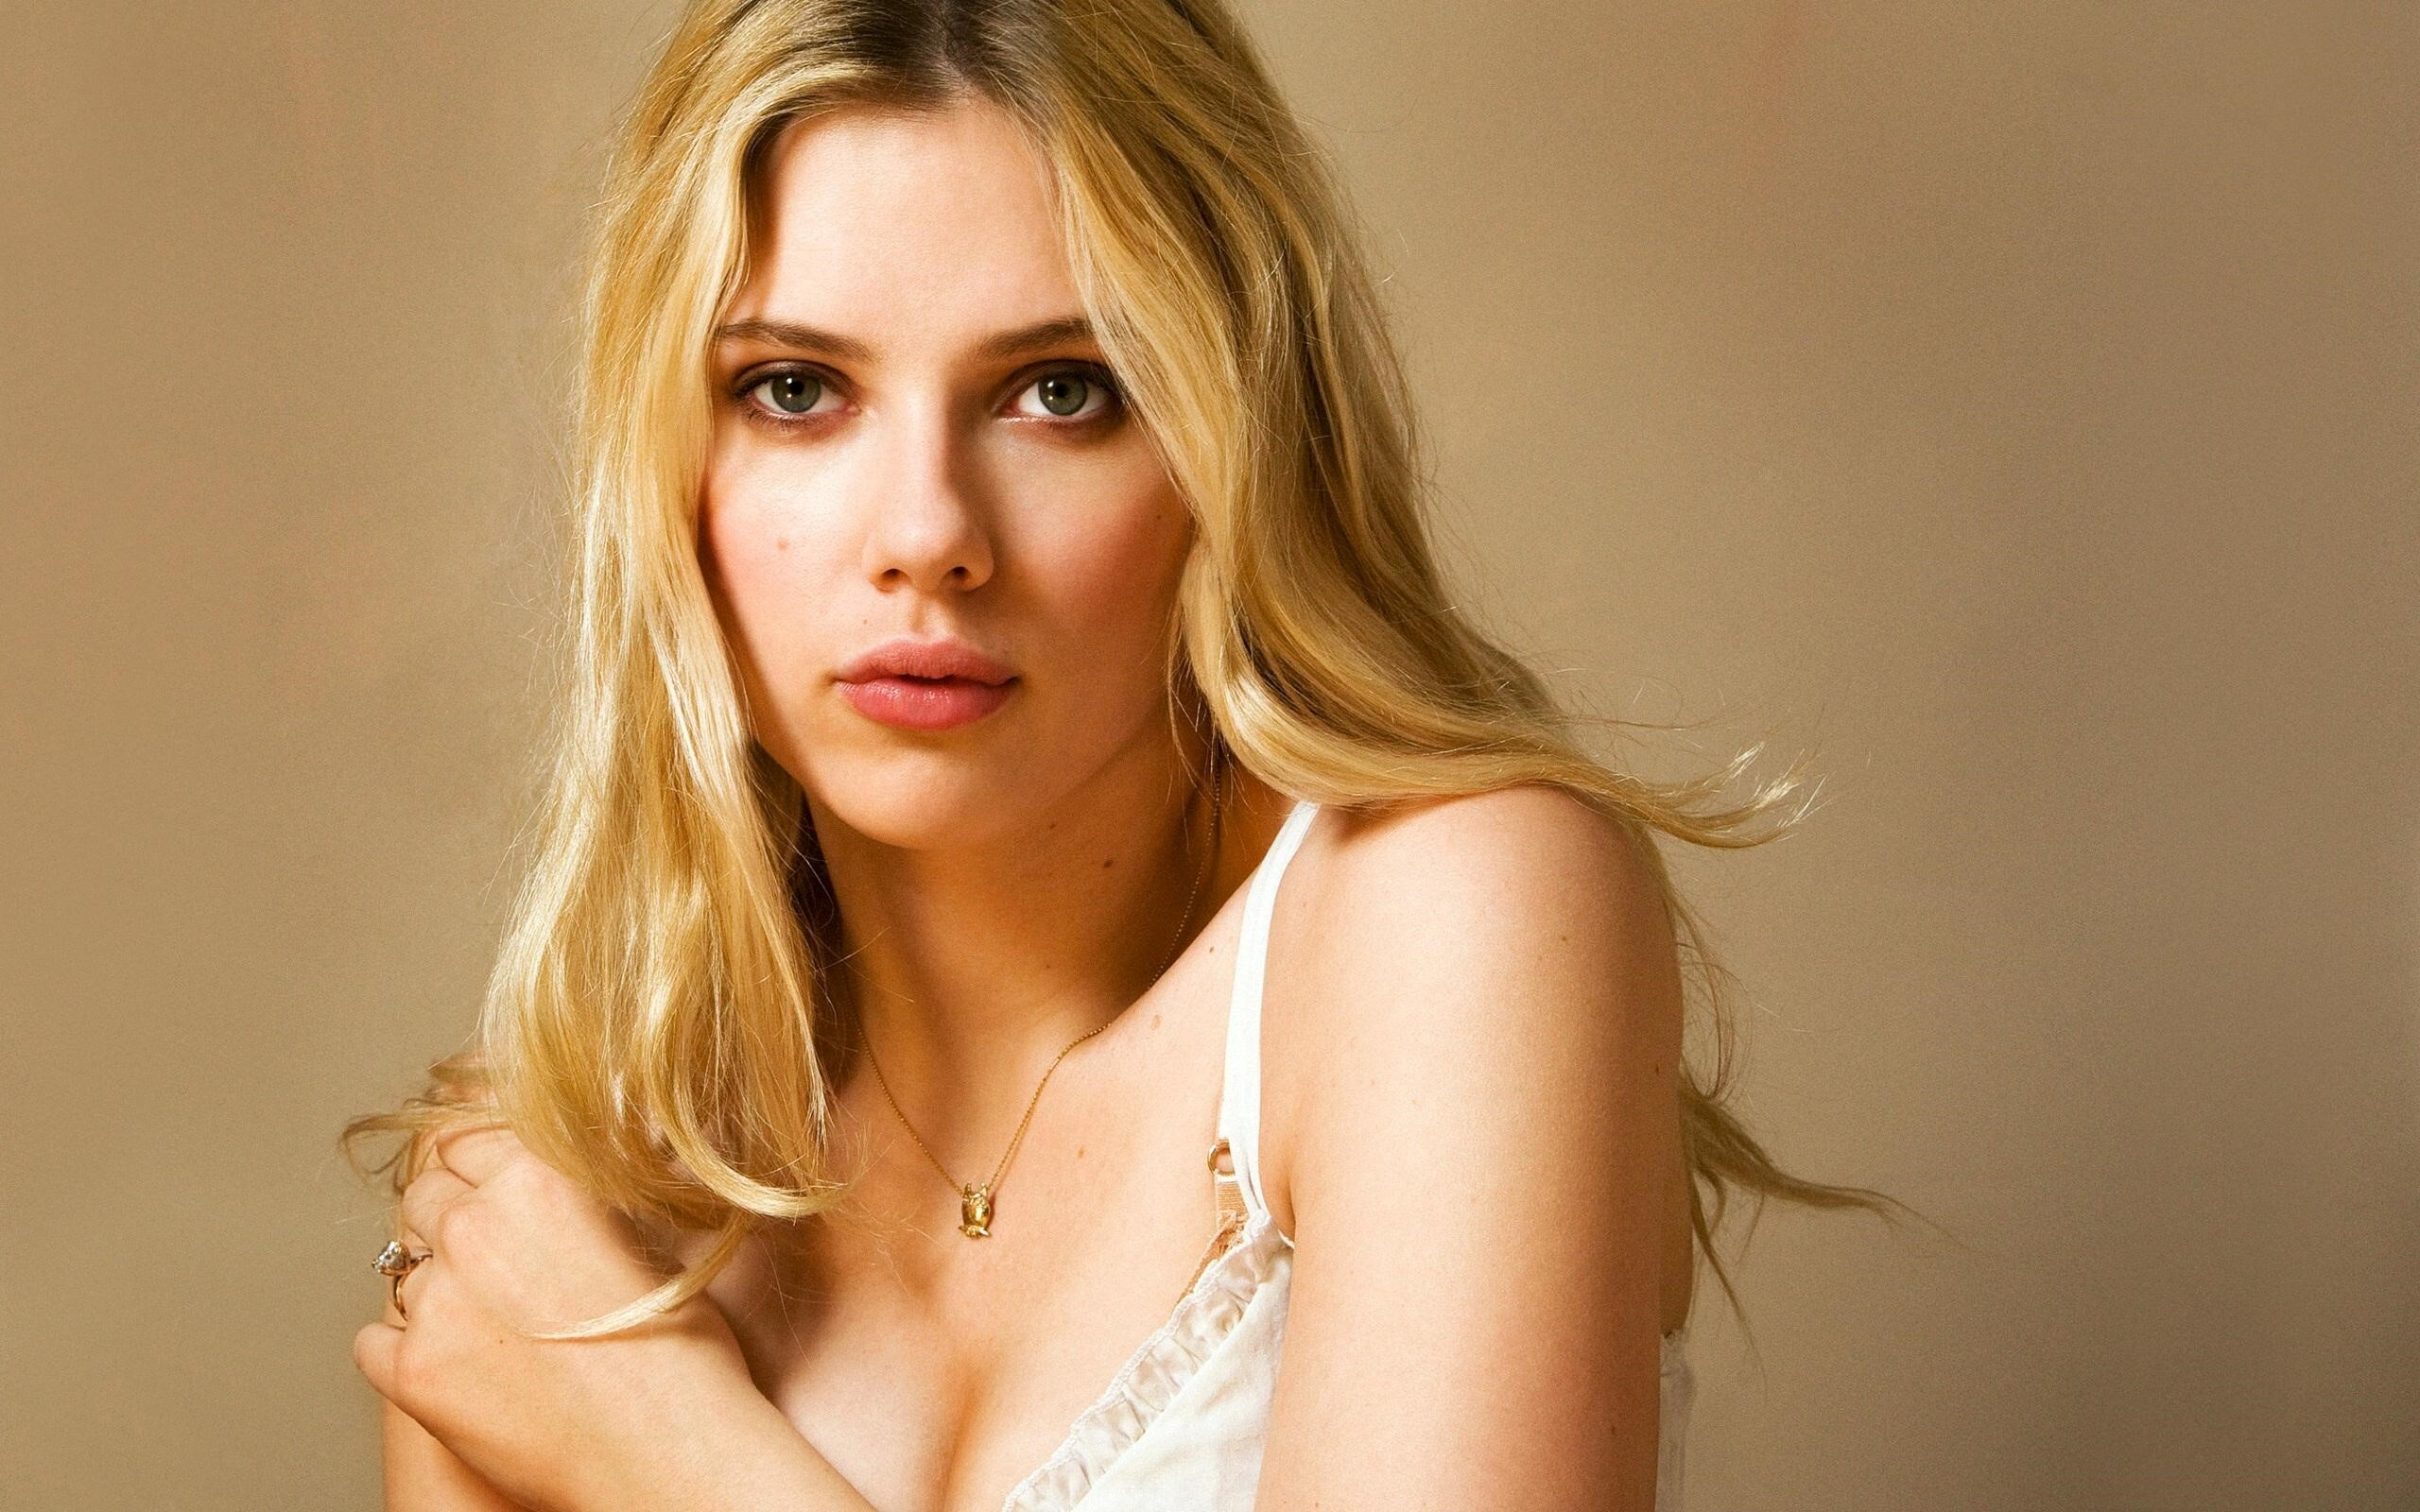 new wallpaper of hollywood celebrity scarlett johansson hd